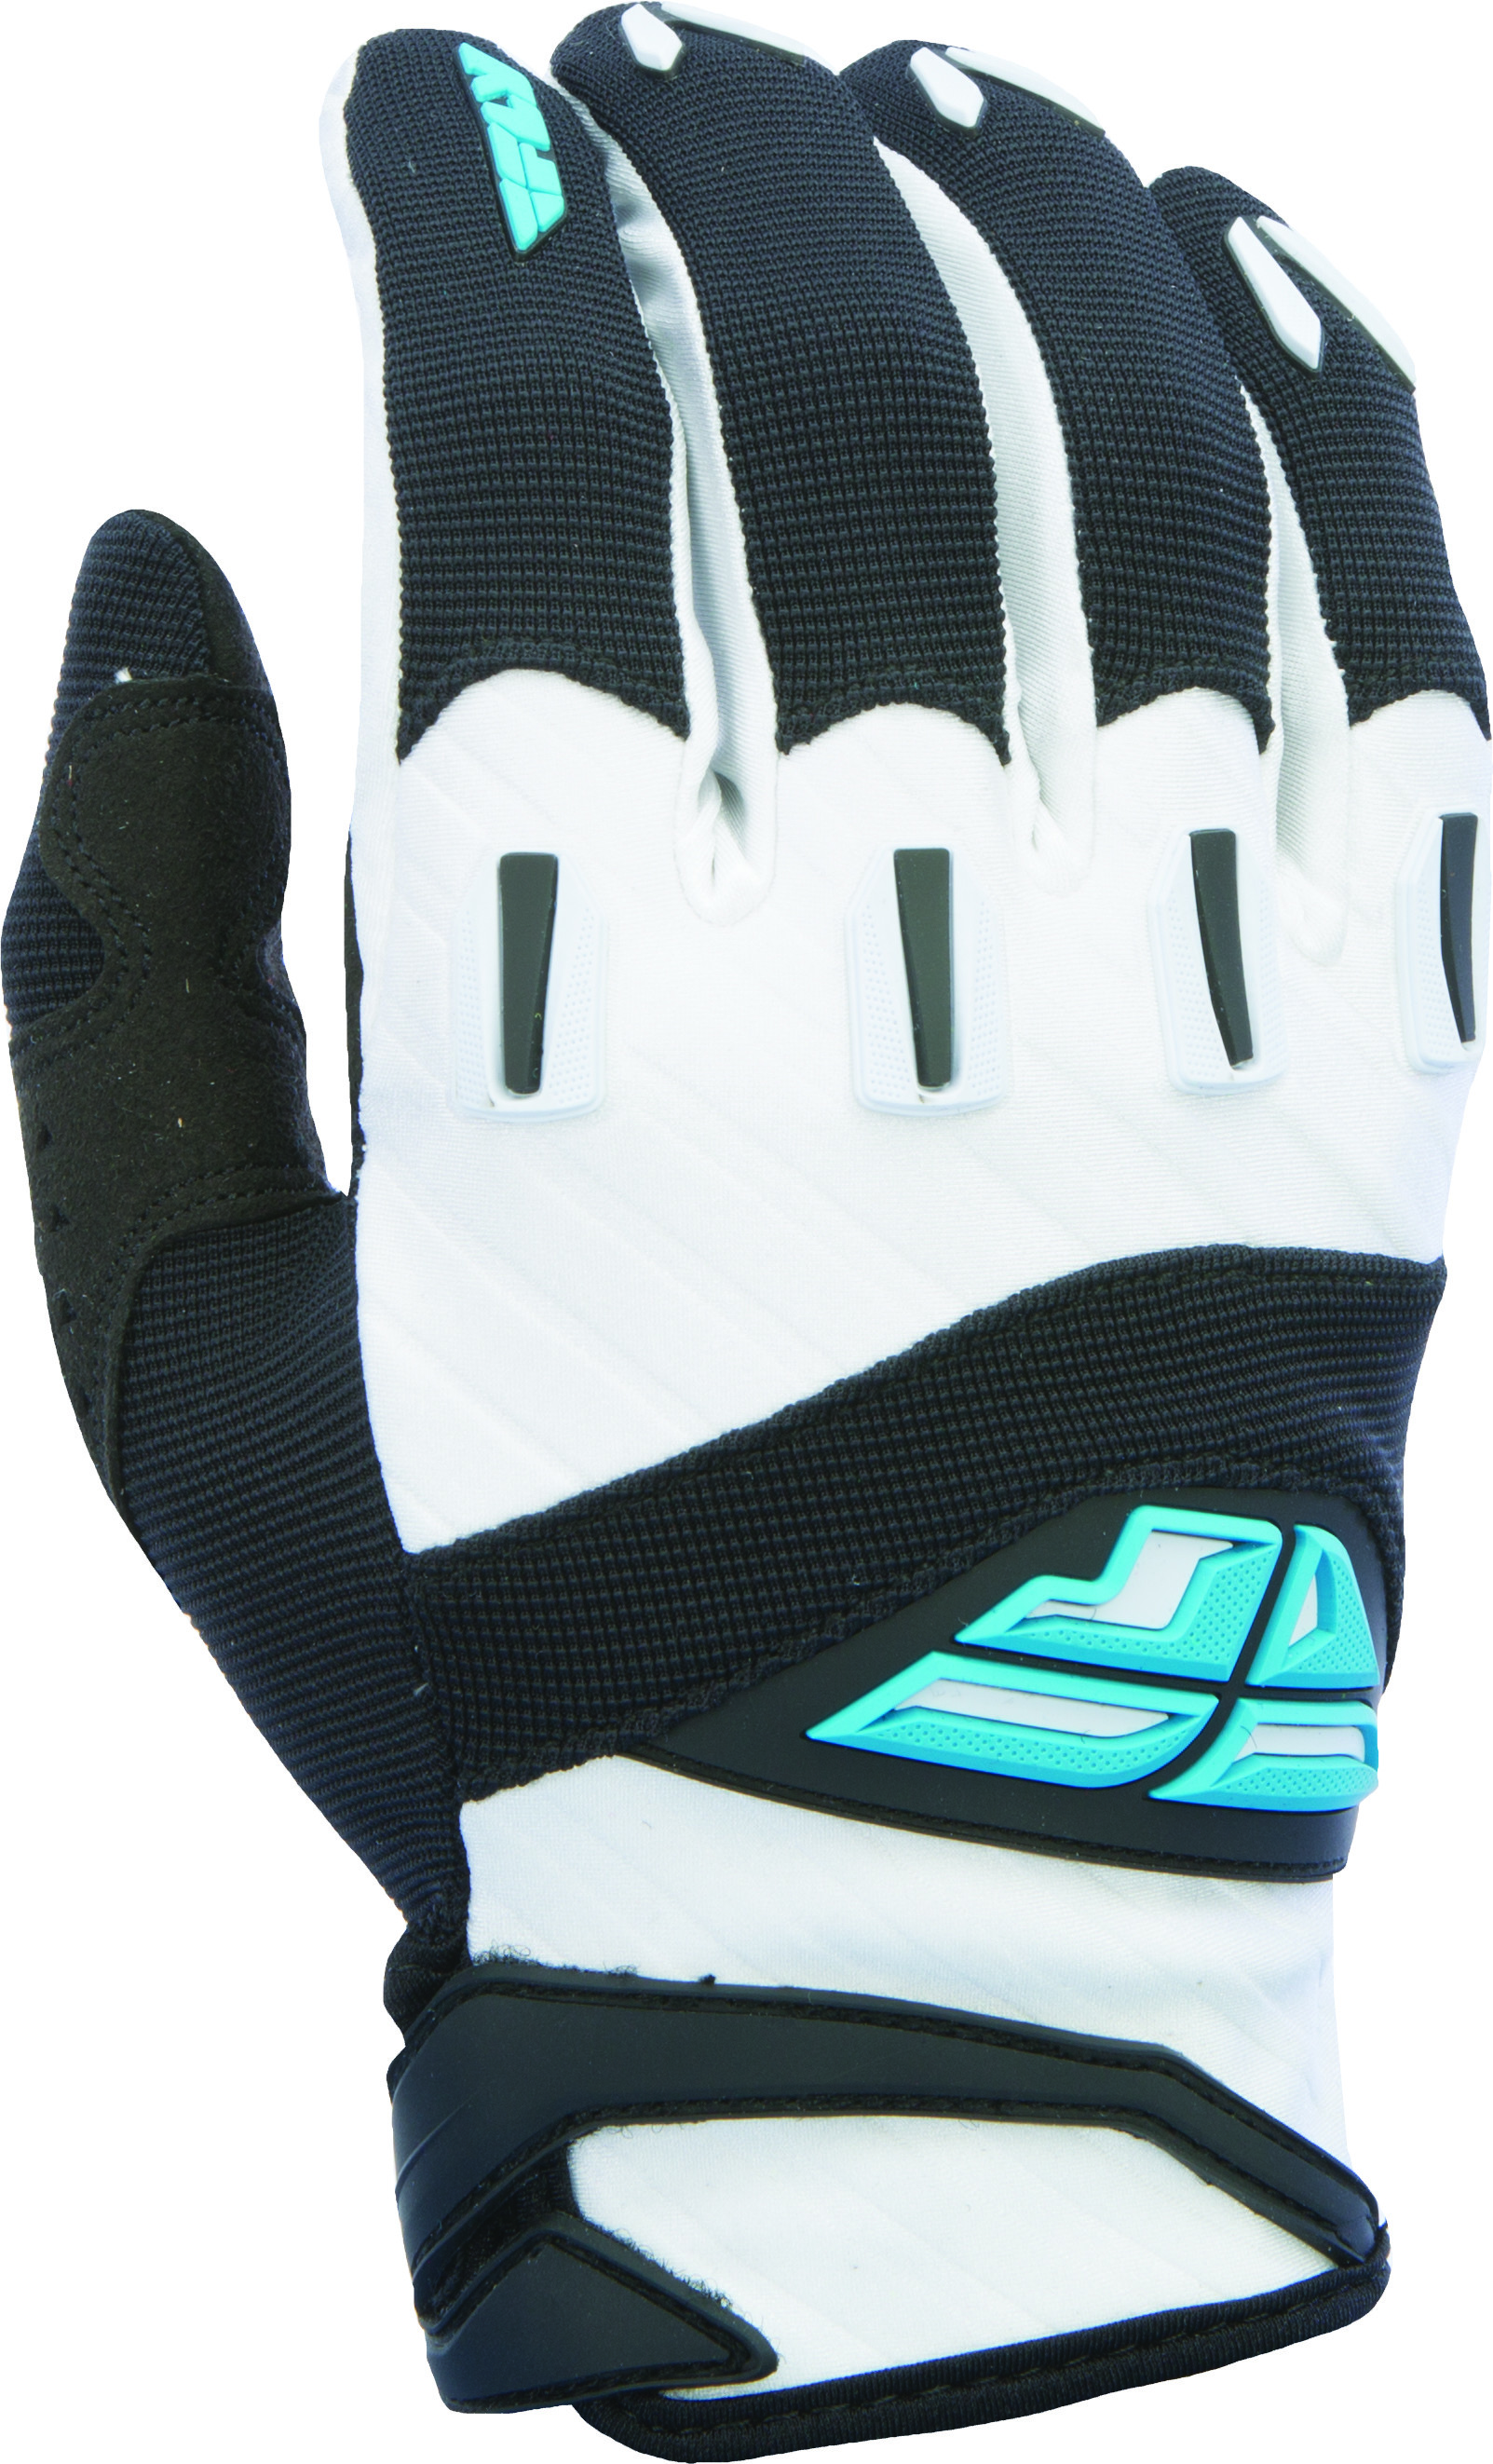 F-16 GLOVE BLACK/WHITE SZ 7 XS (370-91007)